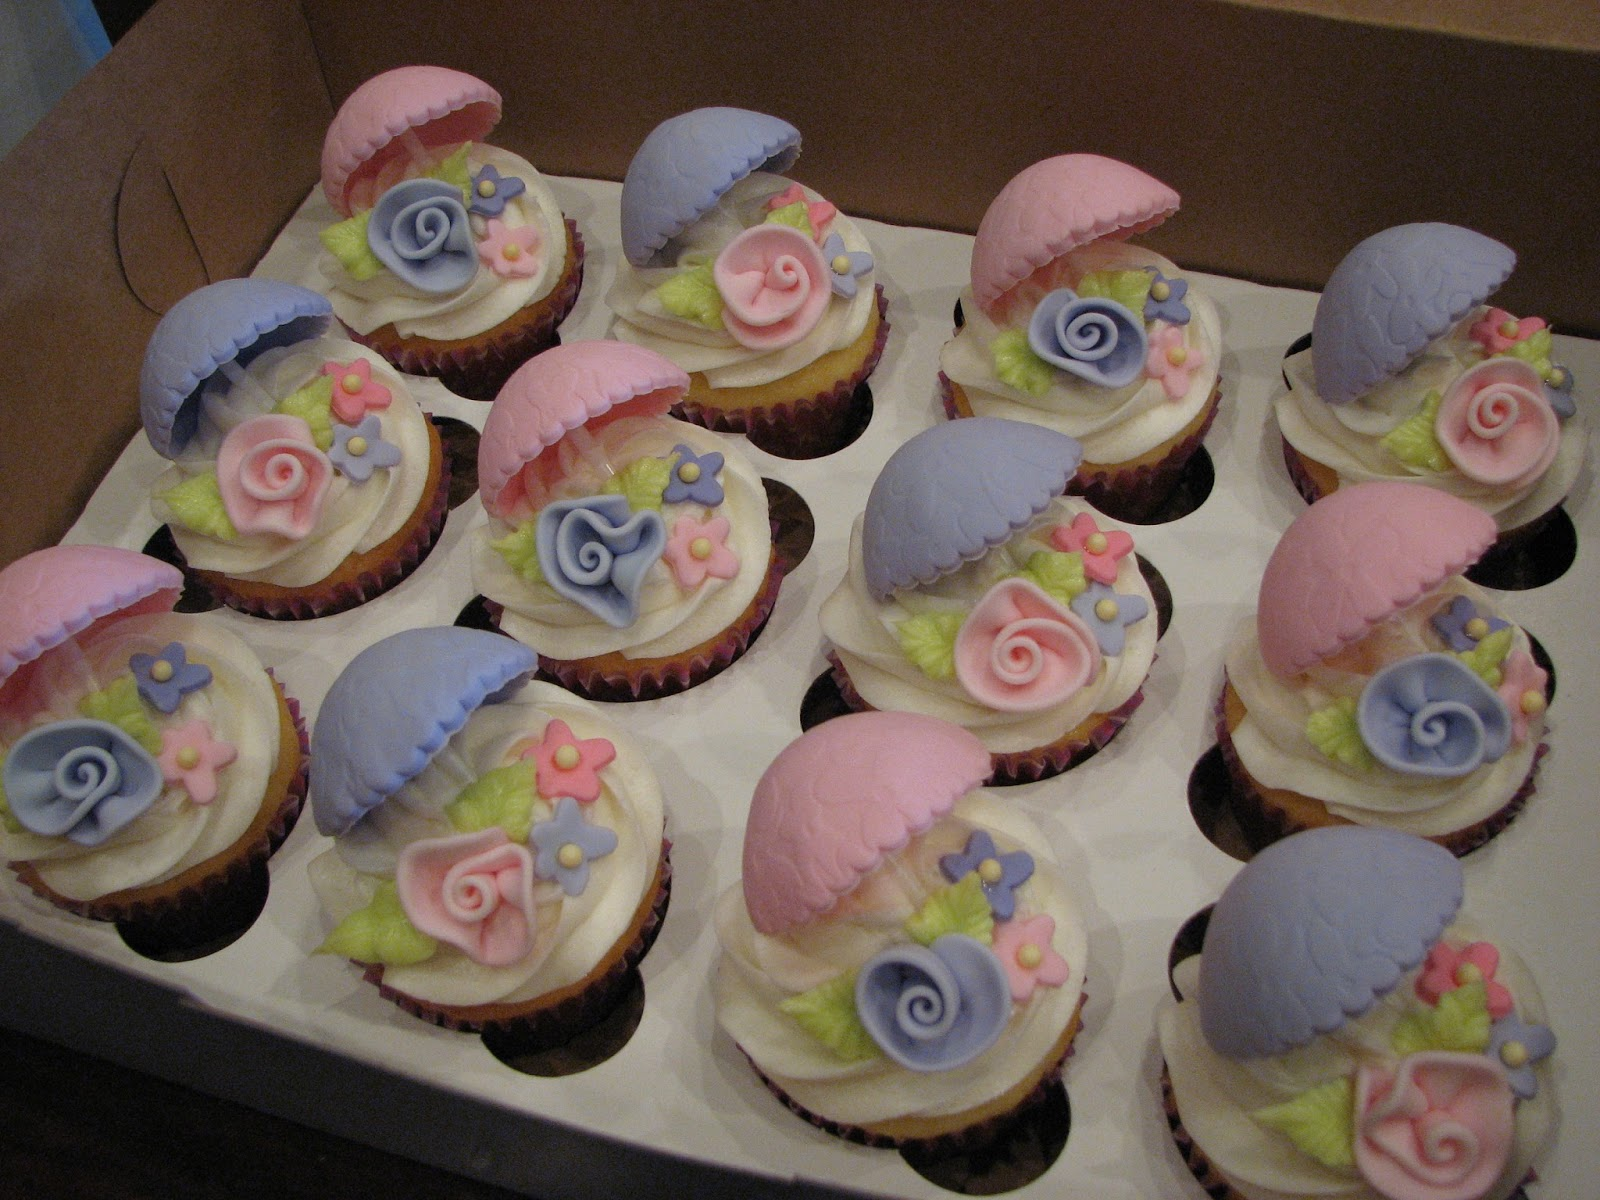 designs april showers bring may flowers baby shower cupcakes